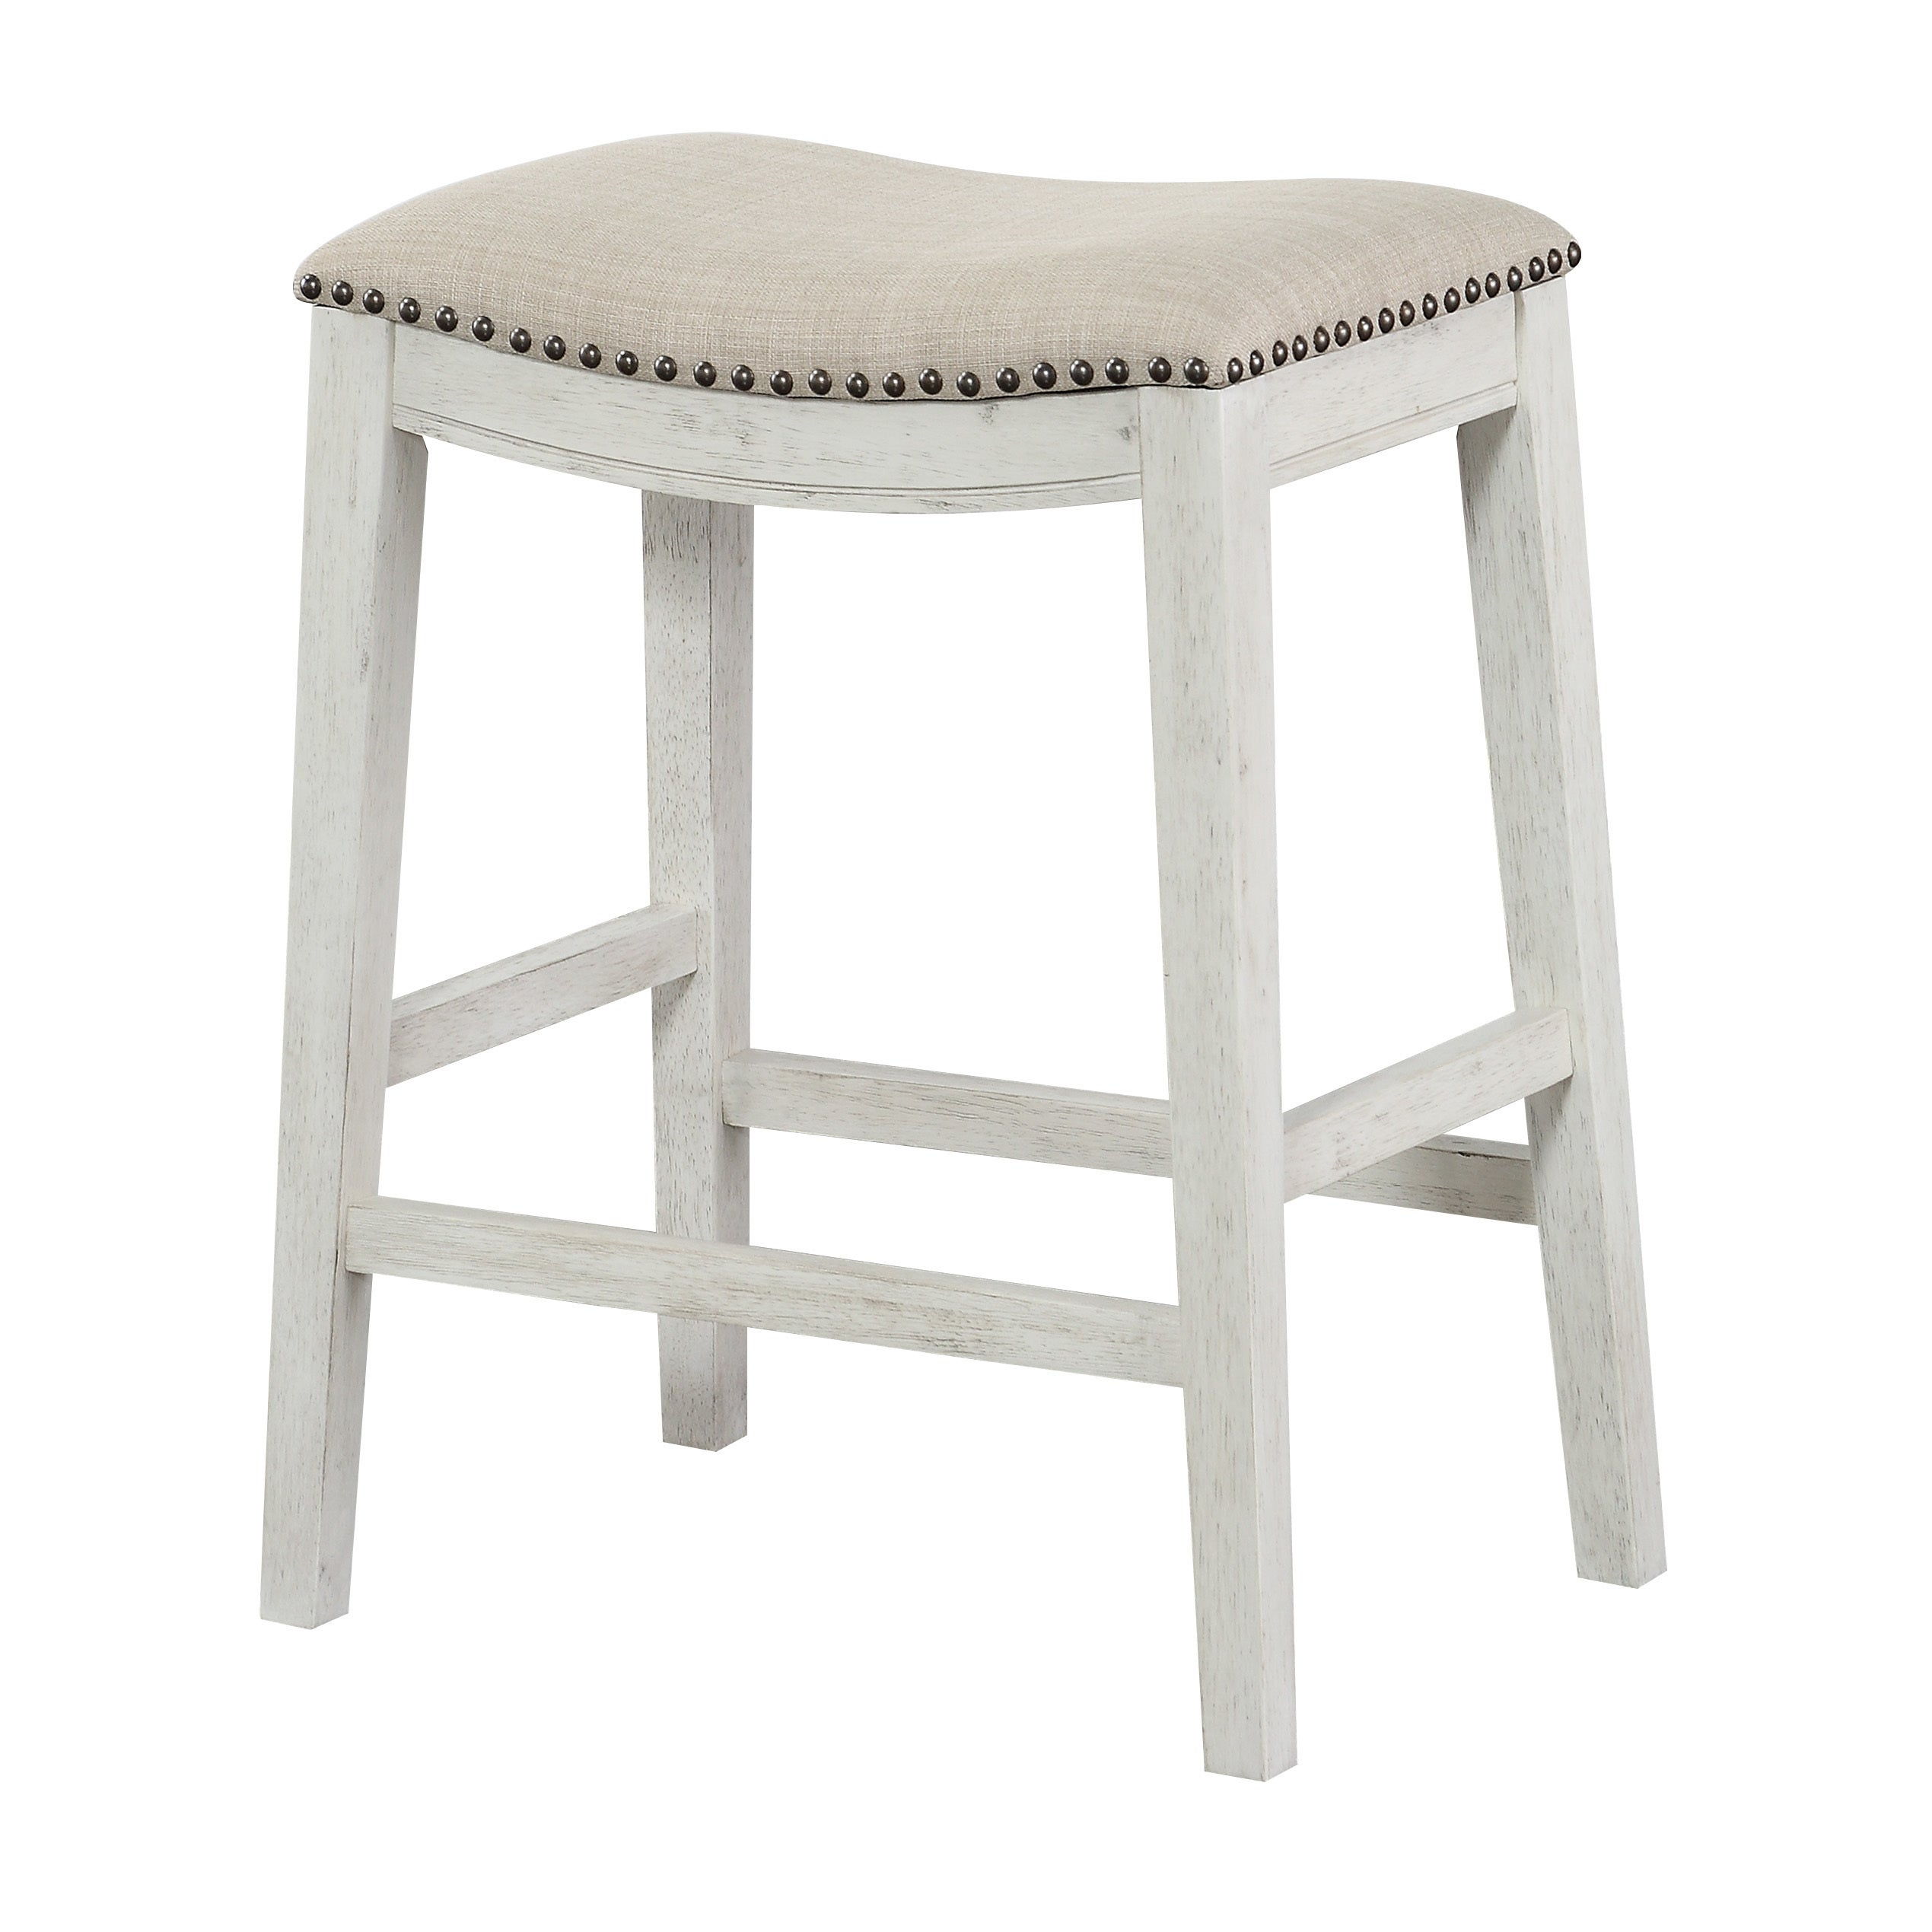 Marvelous Office Star Products Metro Antique White And Beige Upholstered 24 Inch Saddle  Bar Stool (Set Of 2)   Free Shipping Today   Overstock.com   23909116